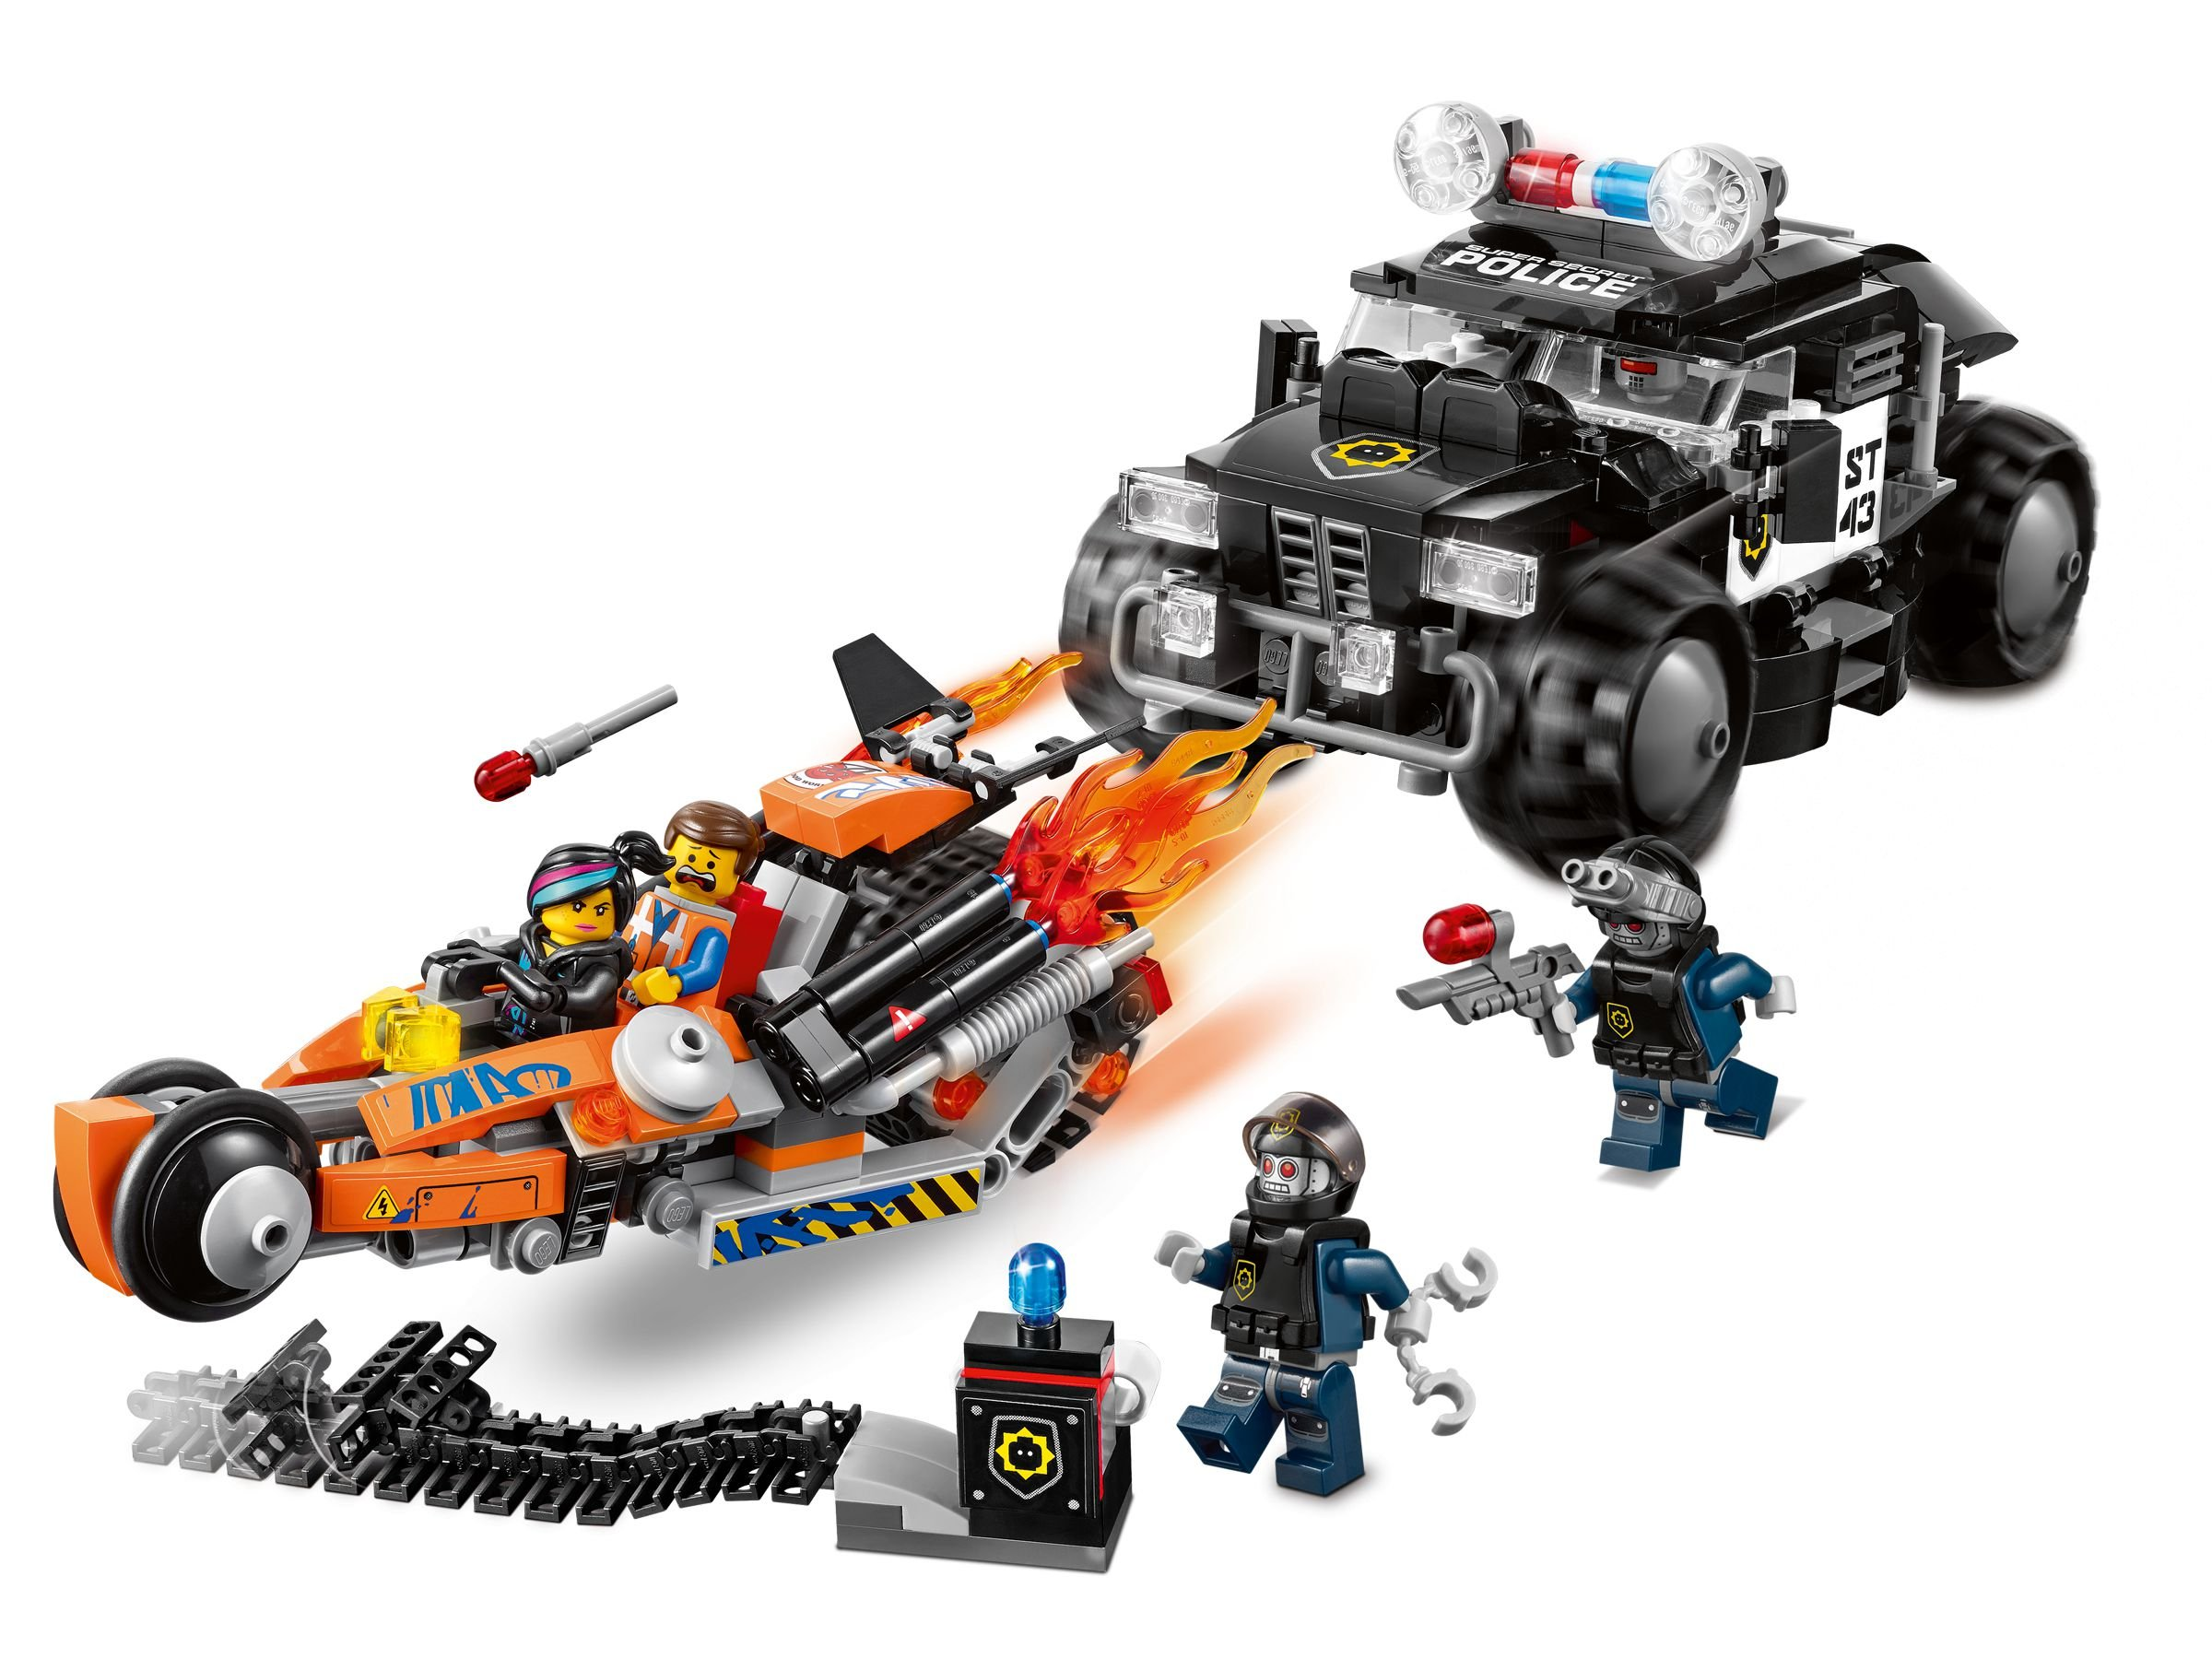 LEGO The LEGO Movie 70808 Superbike Verfolgungsrennen LEGO_70808.jpg